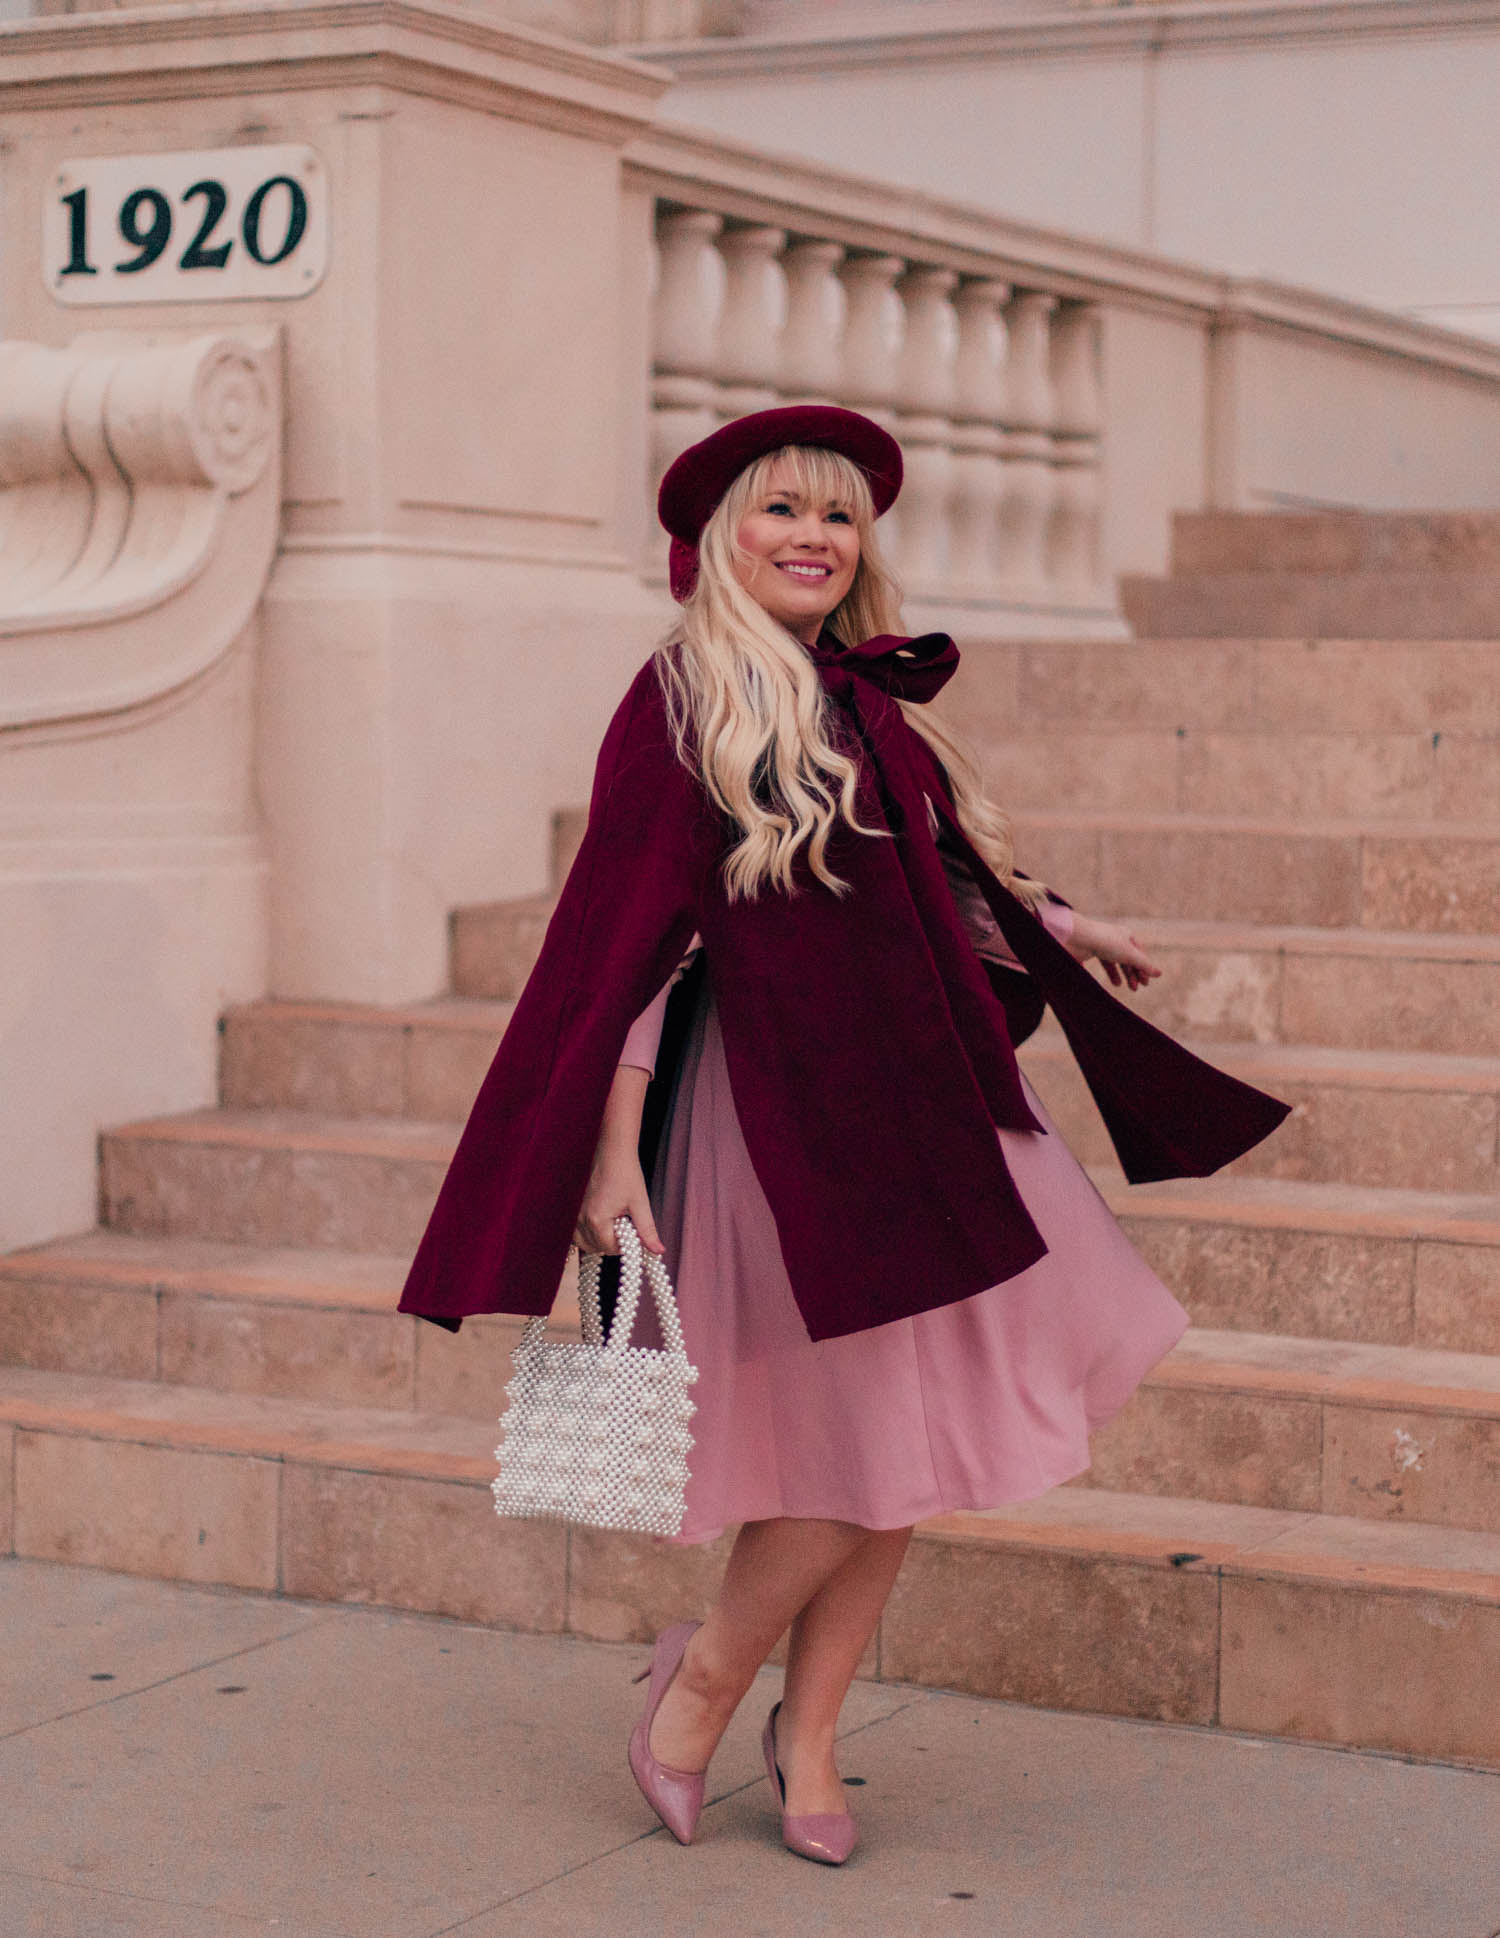 Elizabeth Hugen of Lizzie in Lace styles a red and pink Valentine's Day outfit